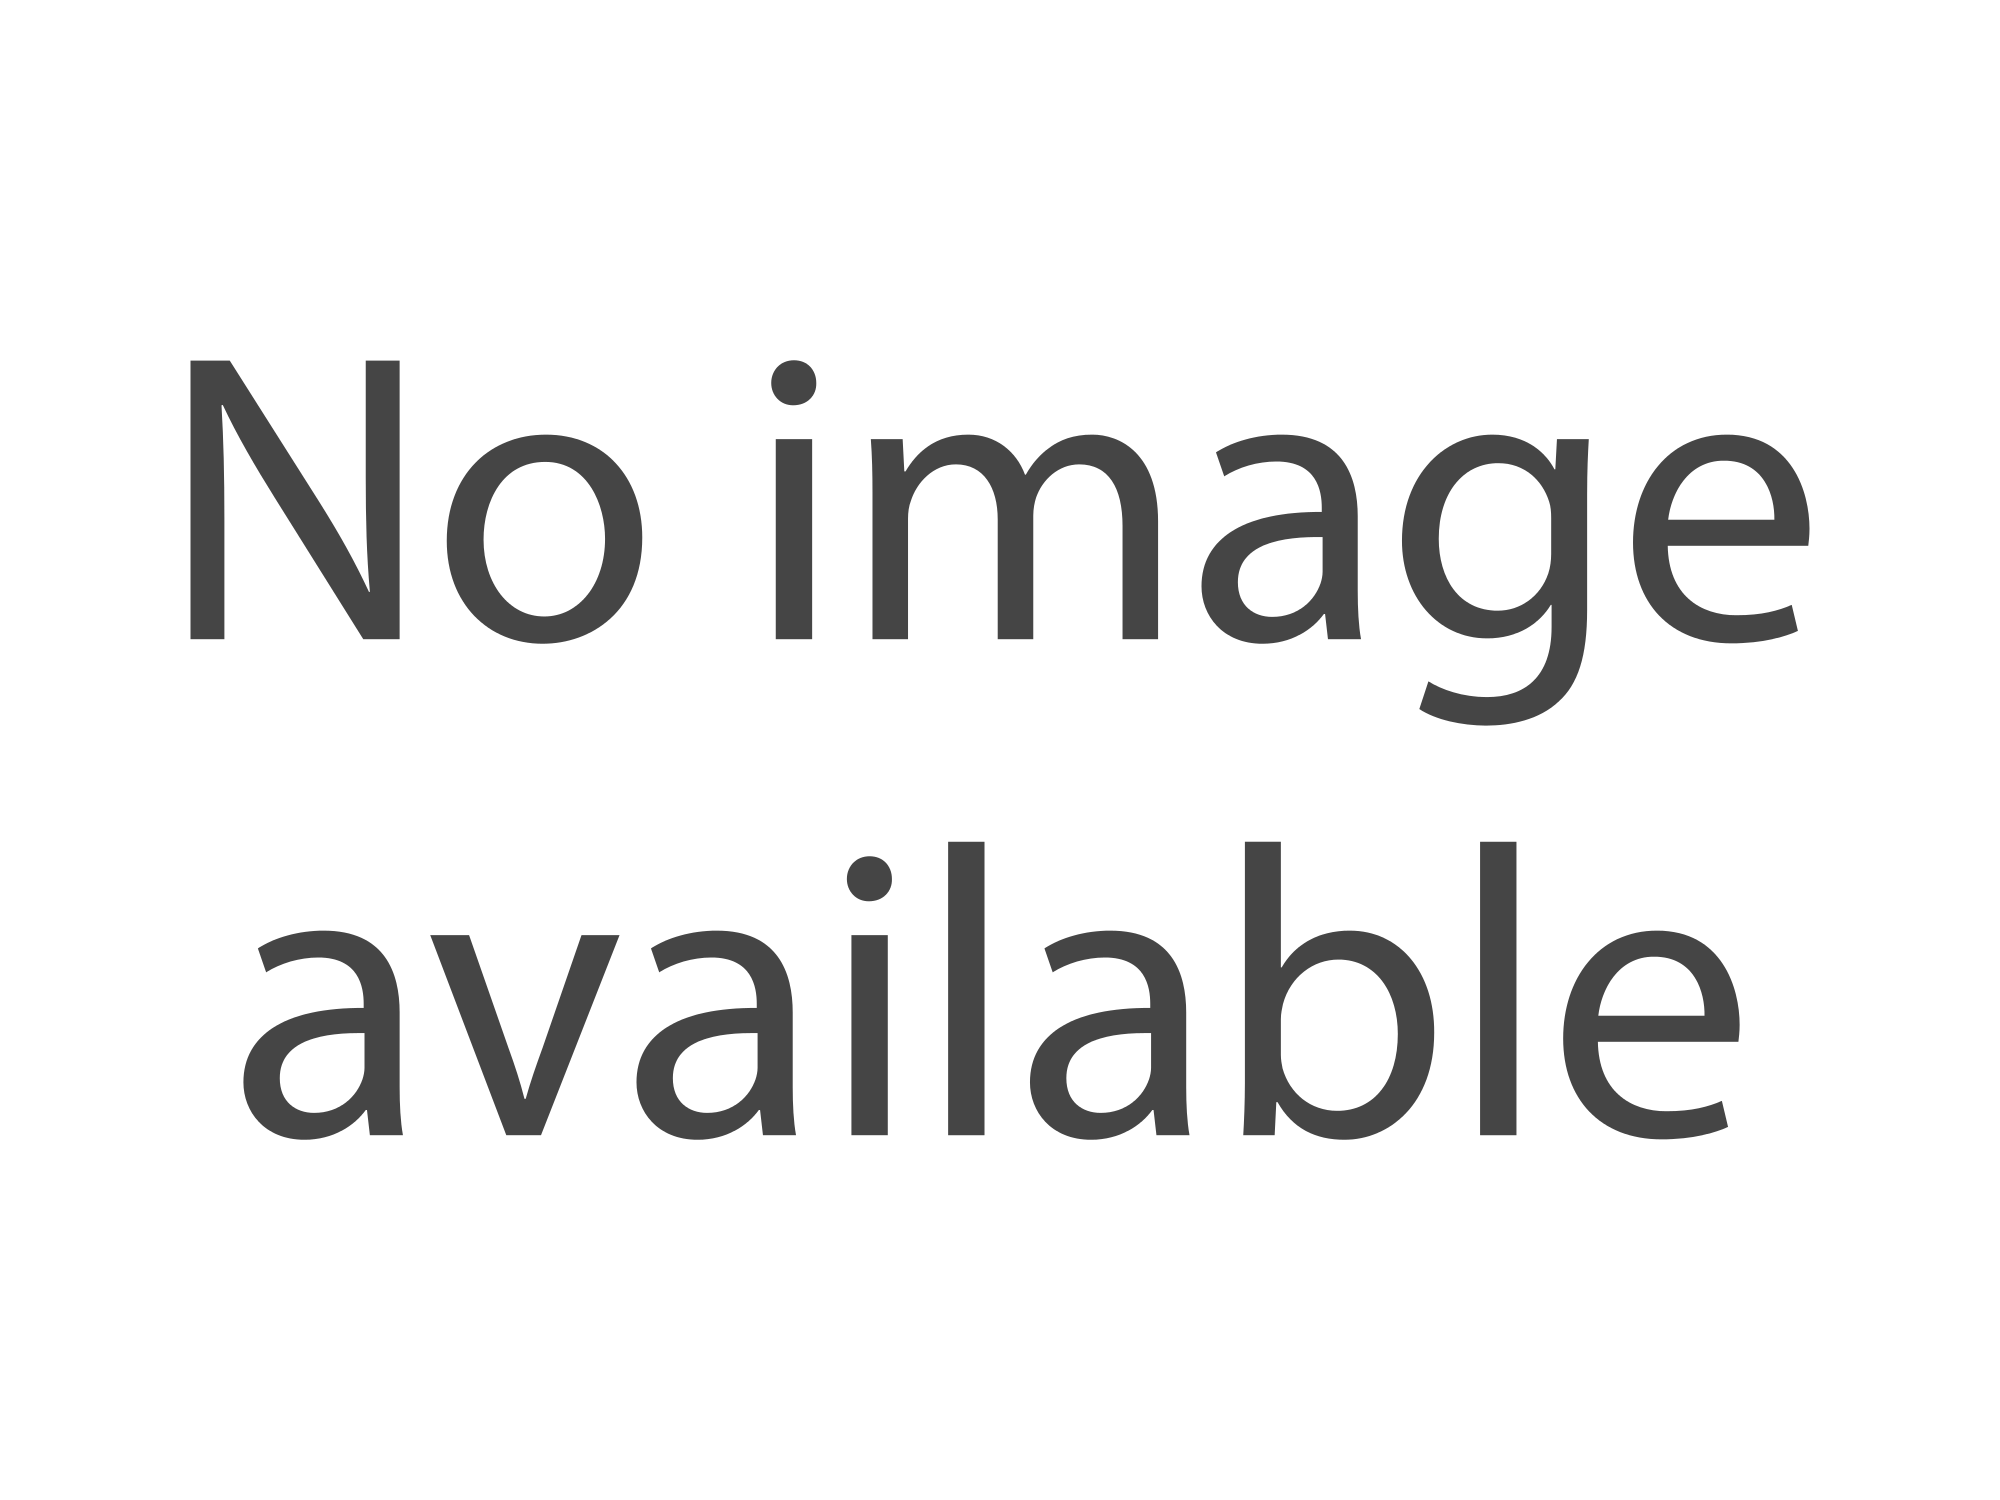 No image available png. File x svg wikimedia